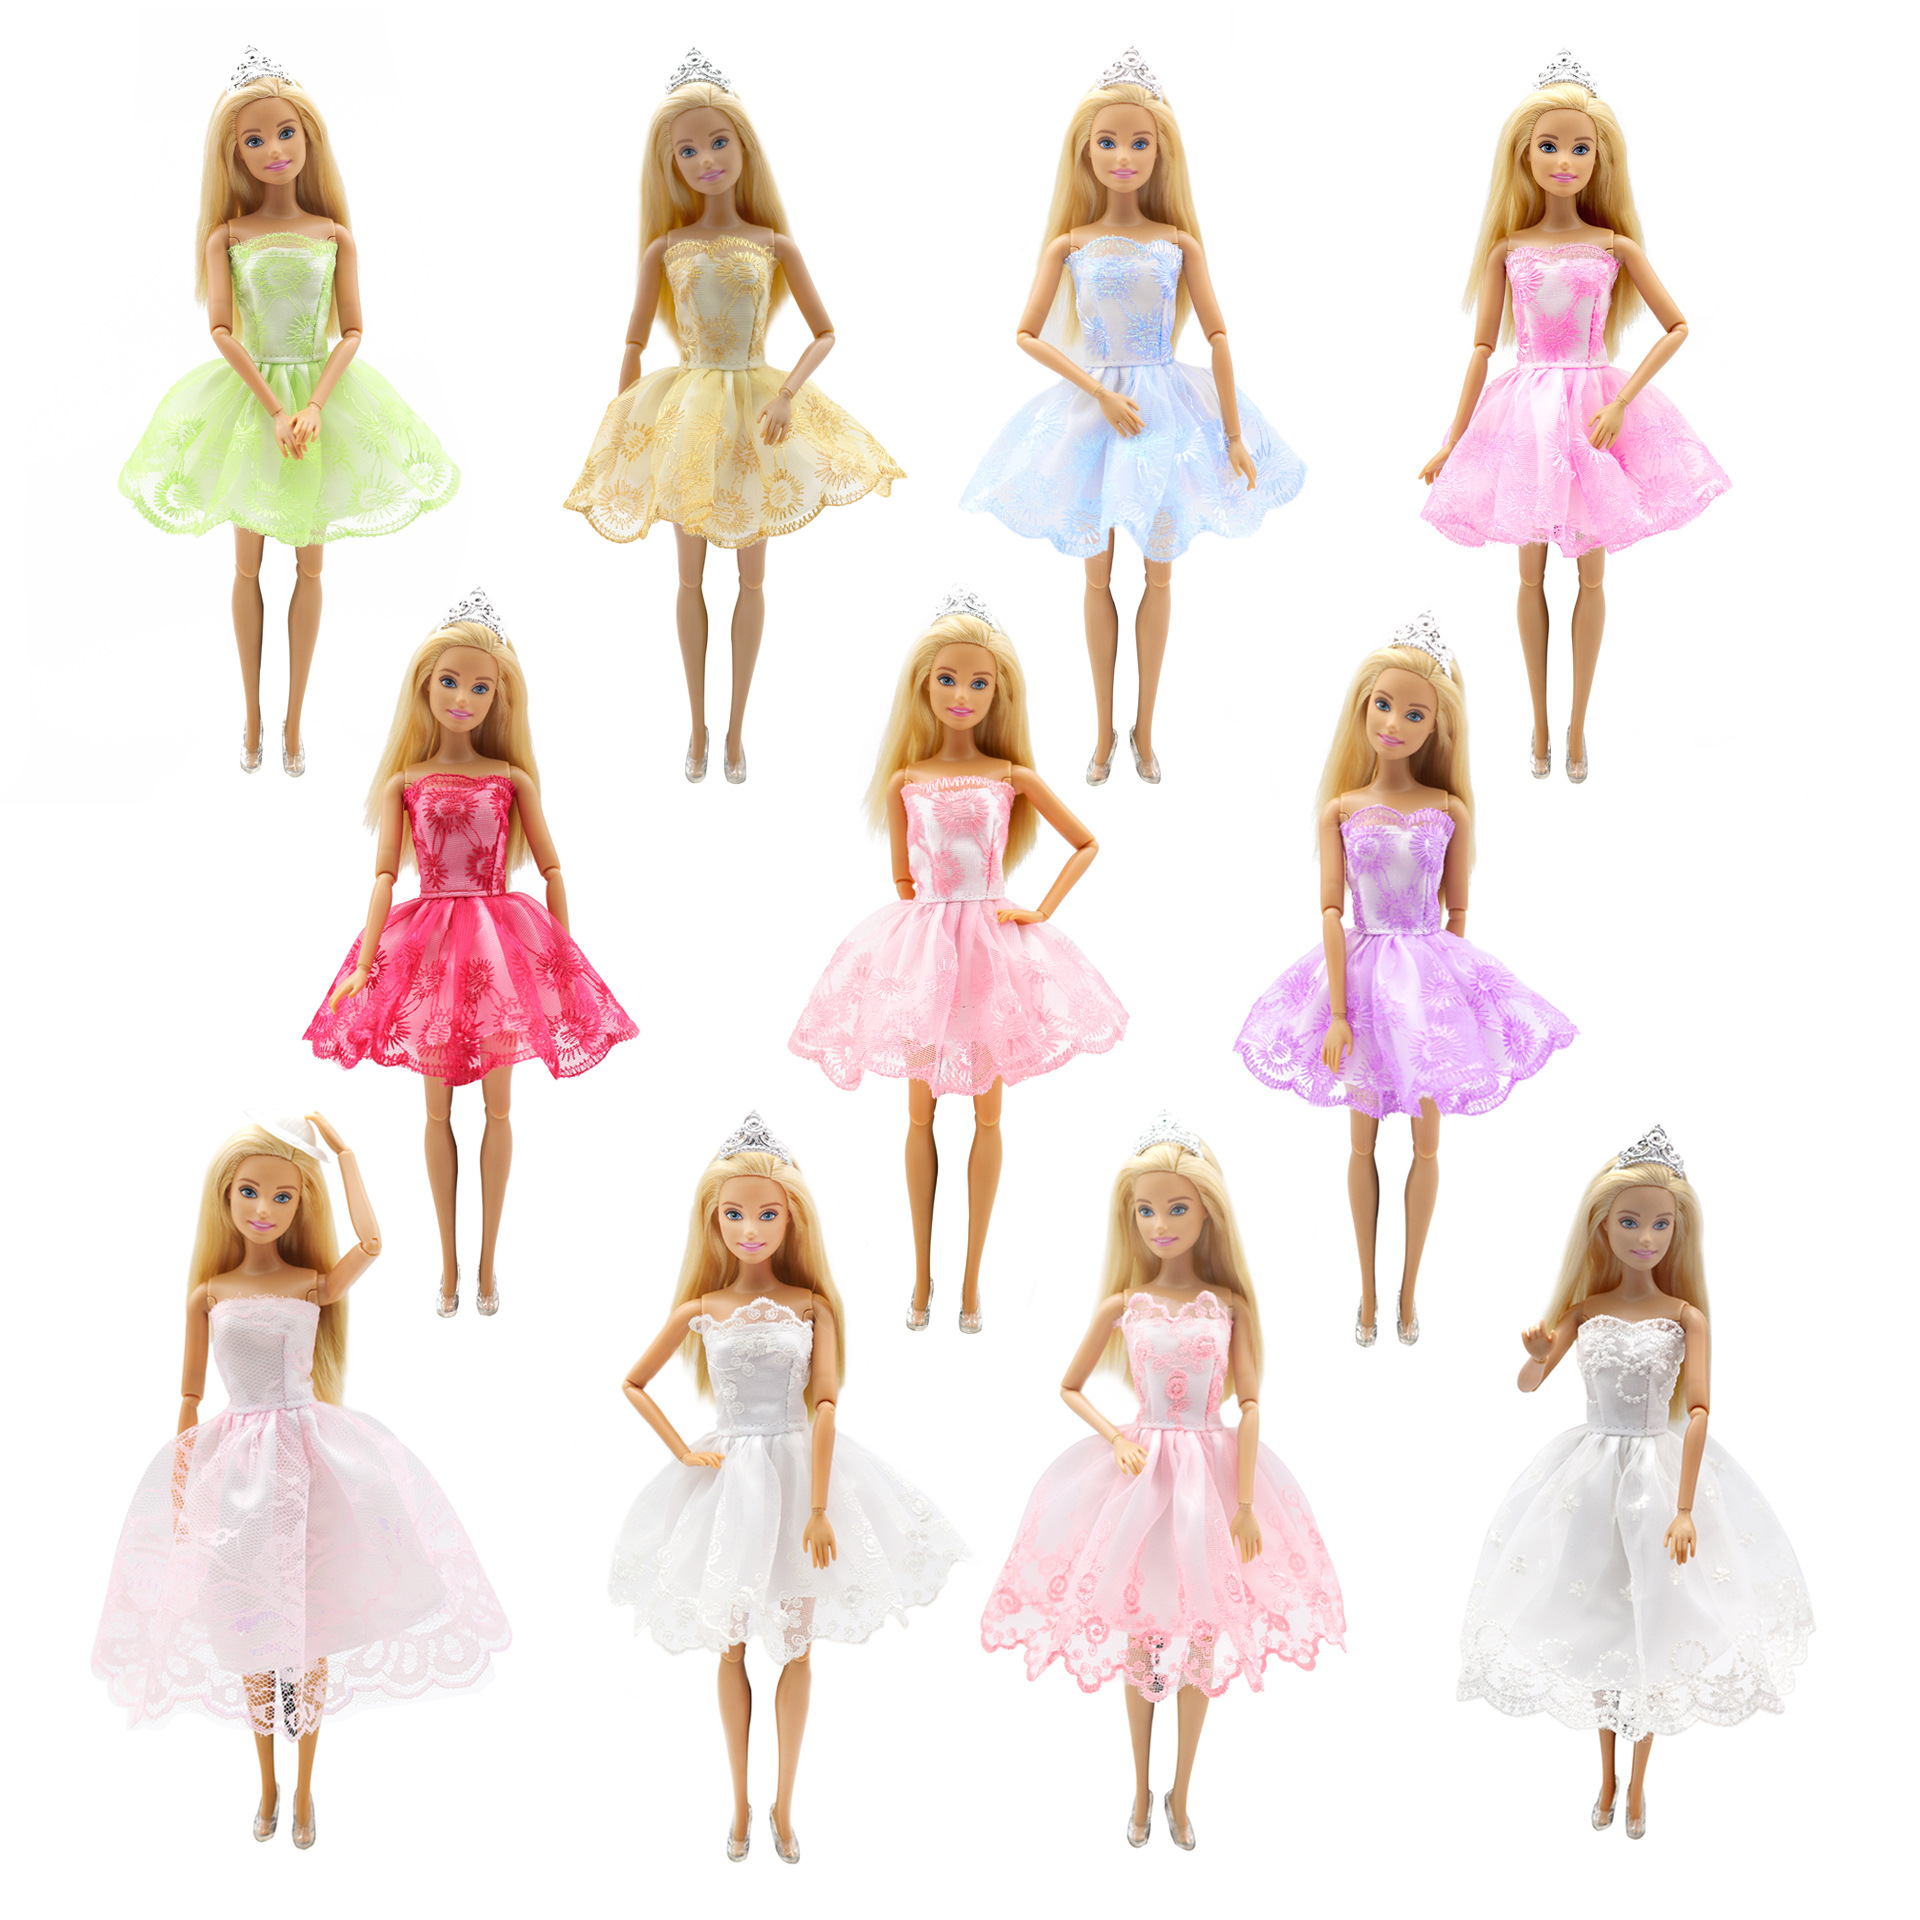 For Barbie Doll Princess Dress Accessories Handmade Fashion Clothes Princess Girls Style Wear Blouse Lace Ballet Skirts Set 29cm